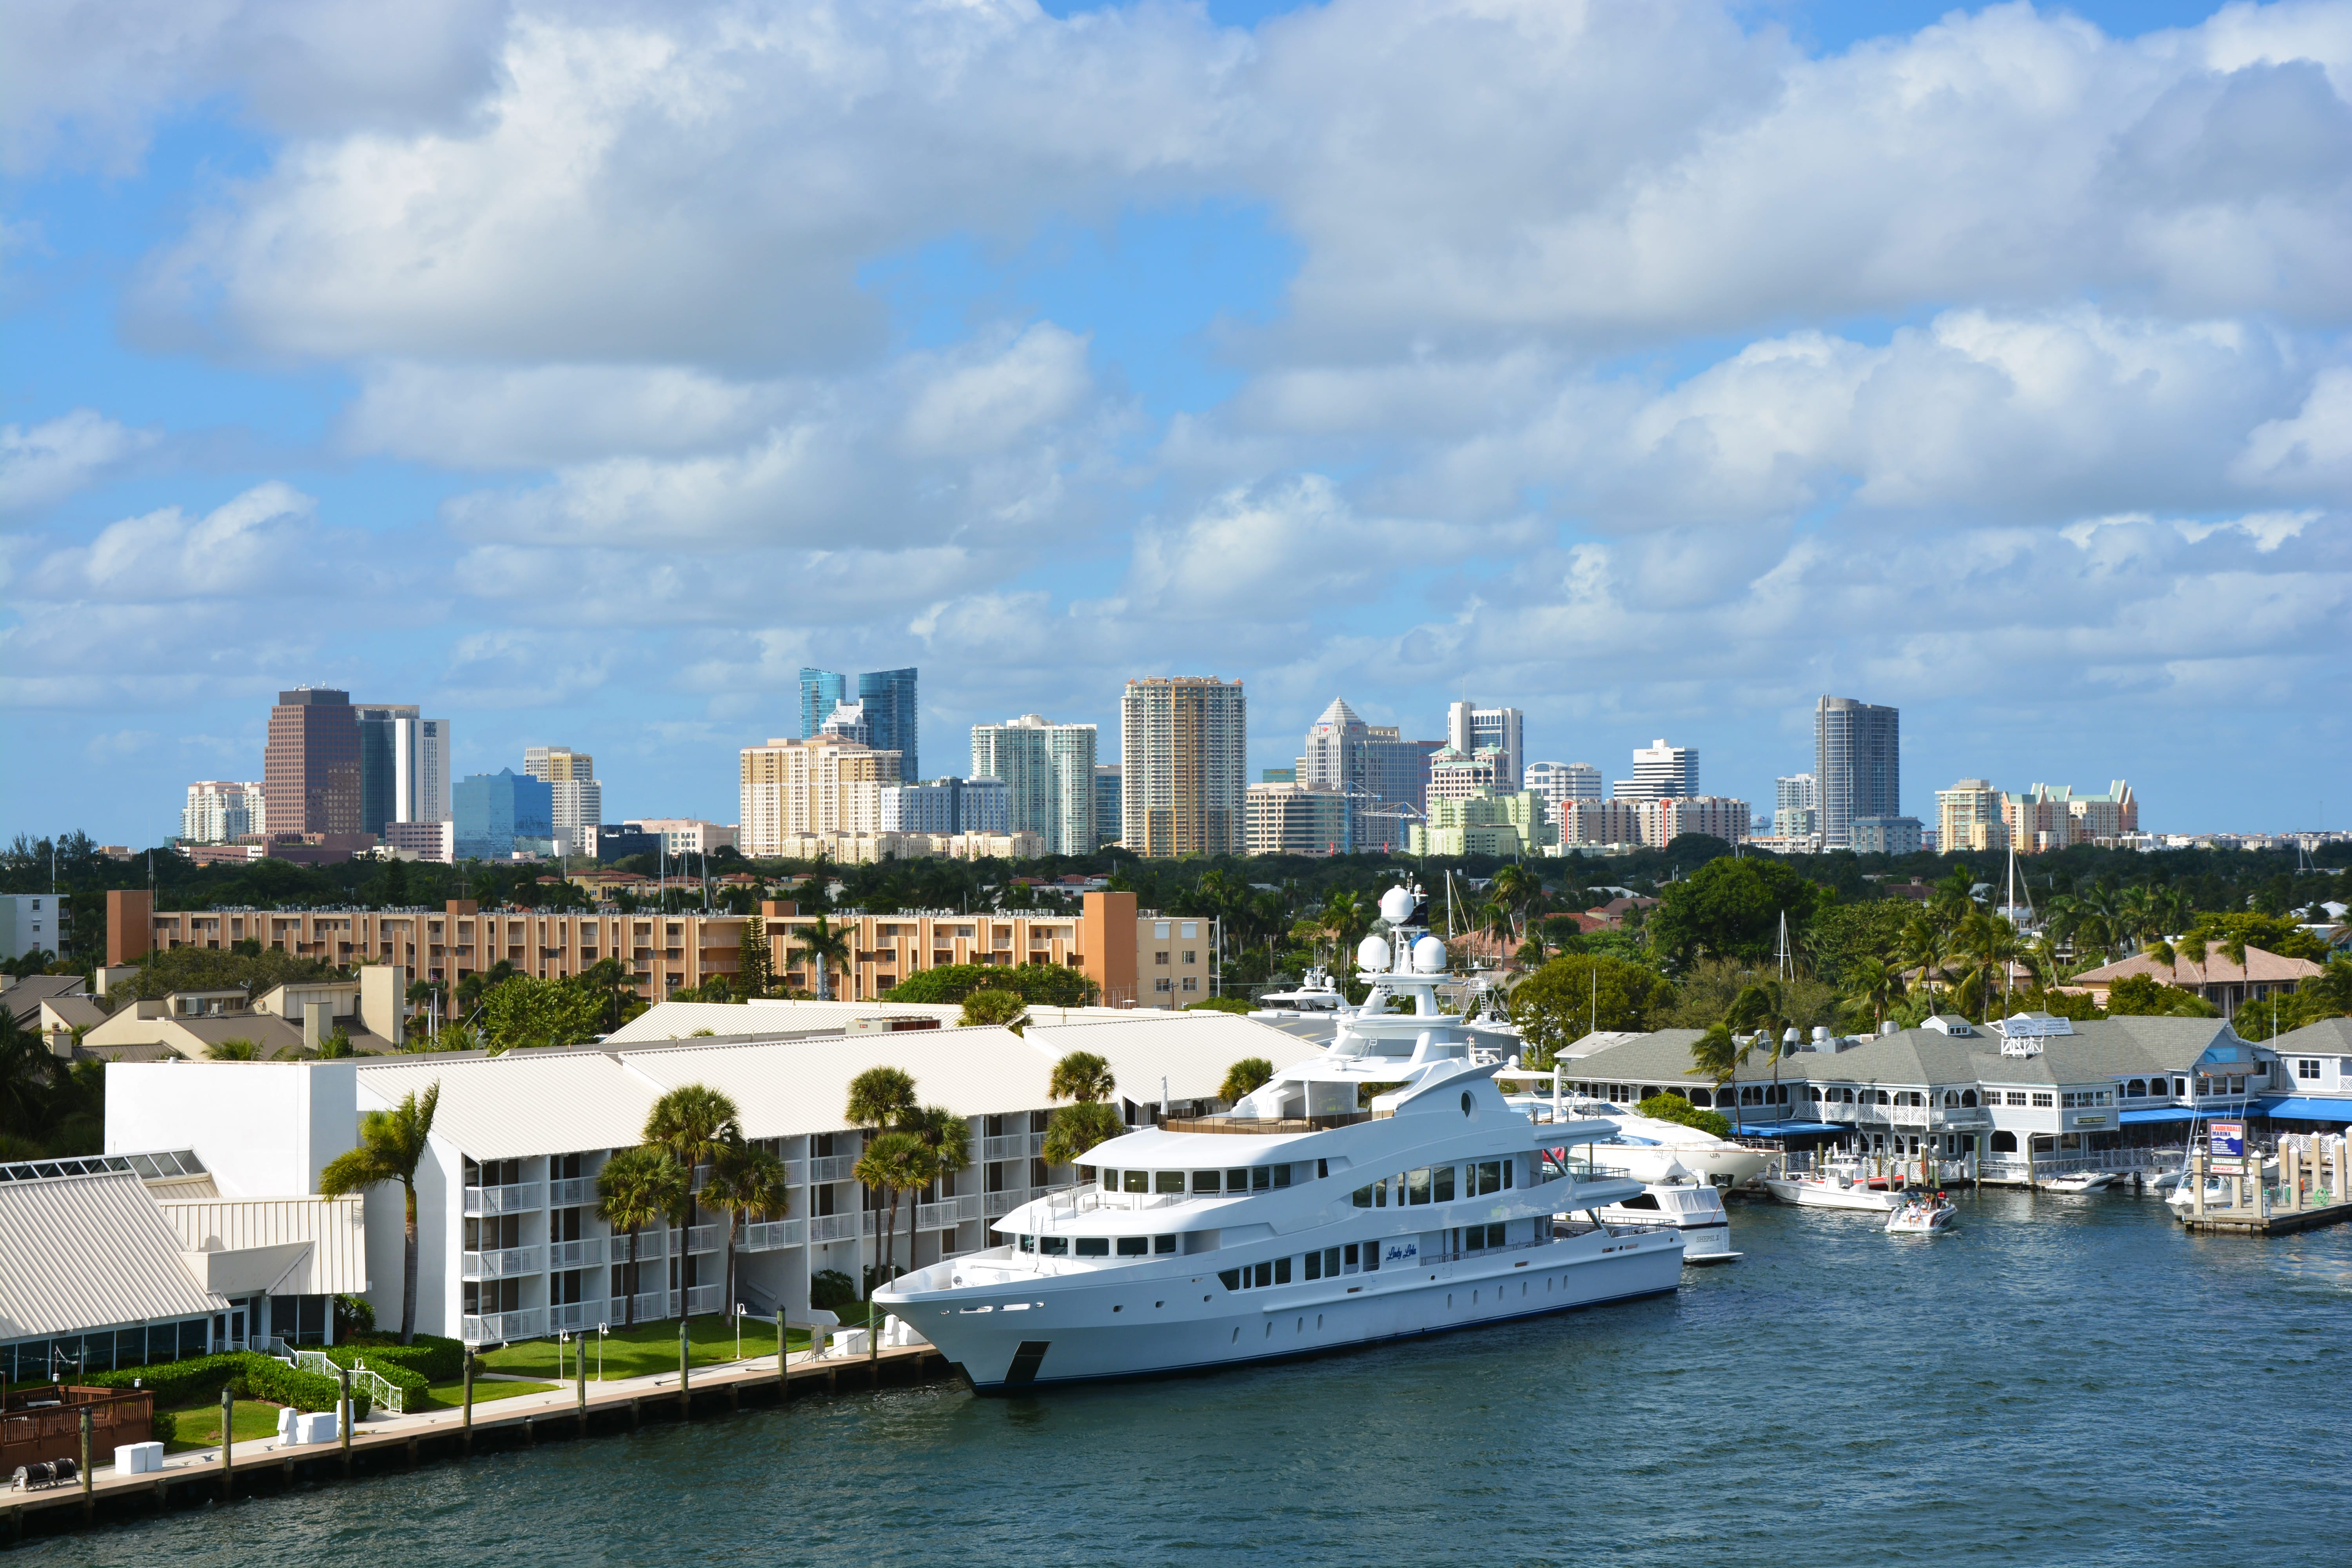 Hero photograph of Fort Lauderdale Executive FXE in Fort Lauderdale FL